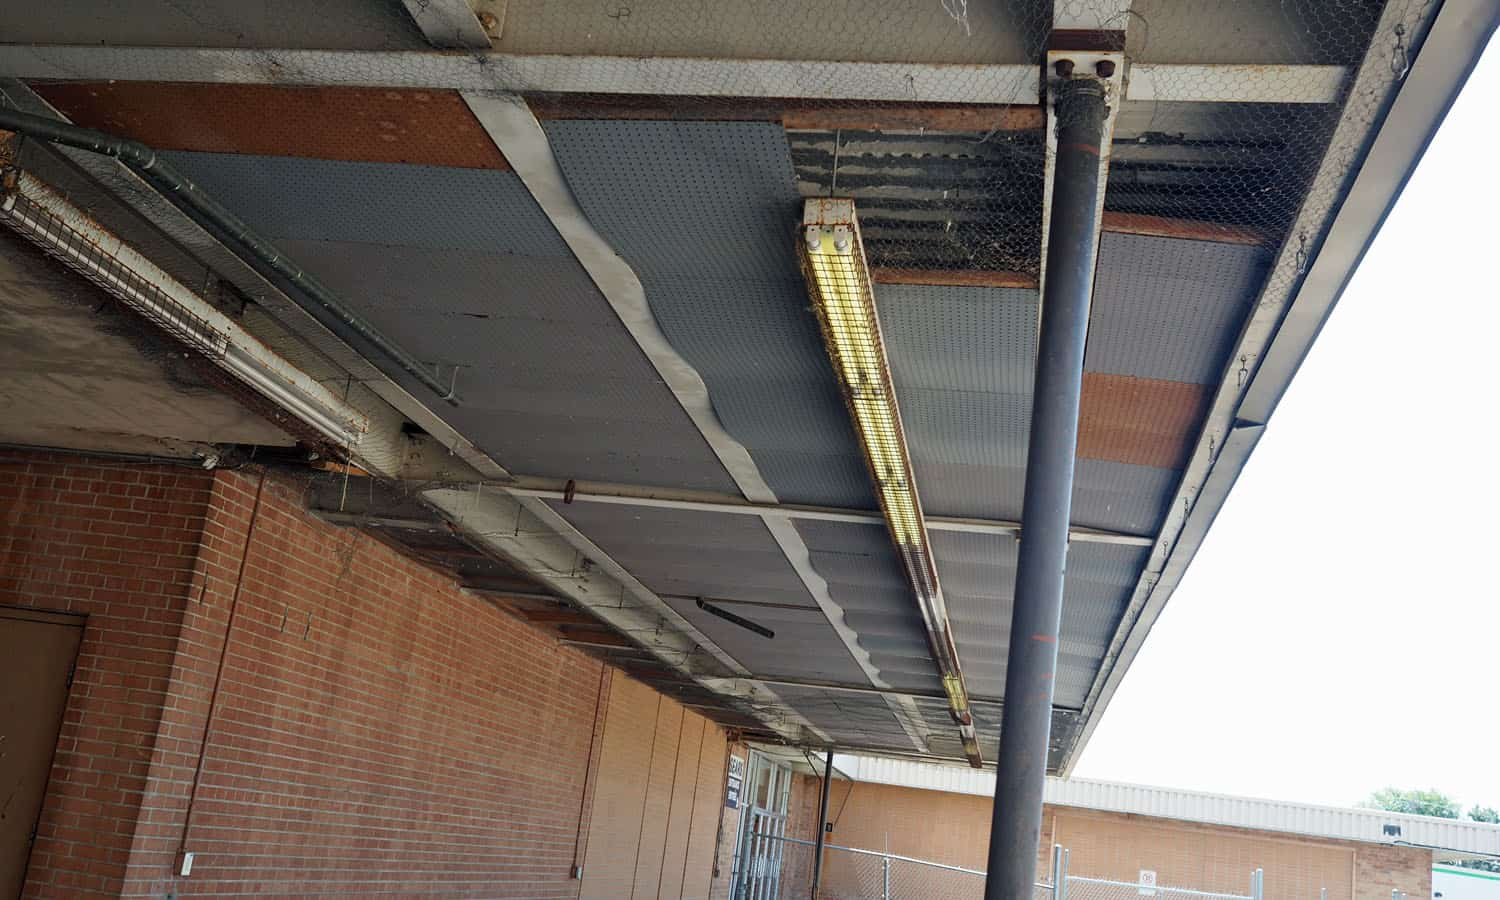 Underside of a canopy on the west side of the store